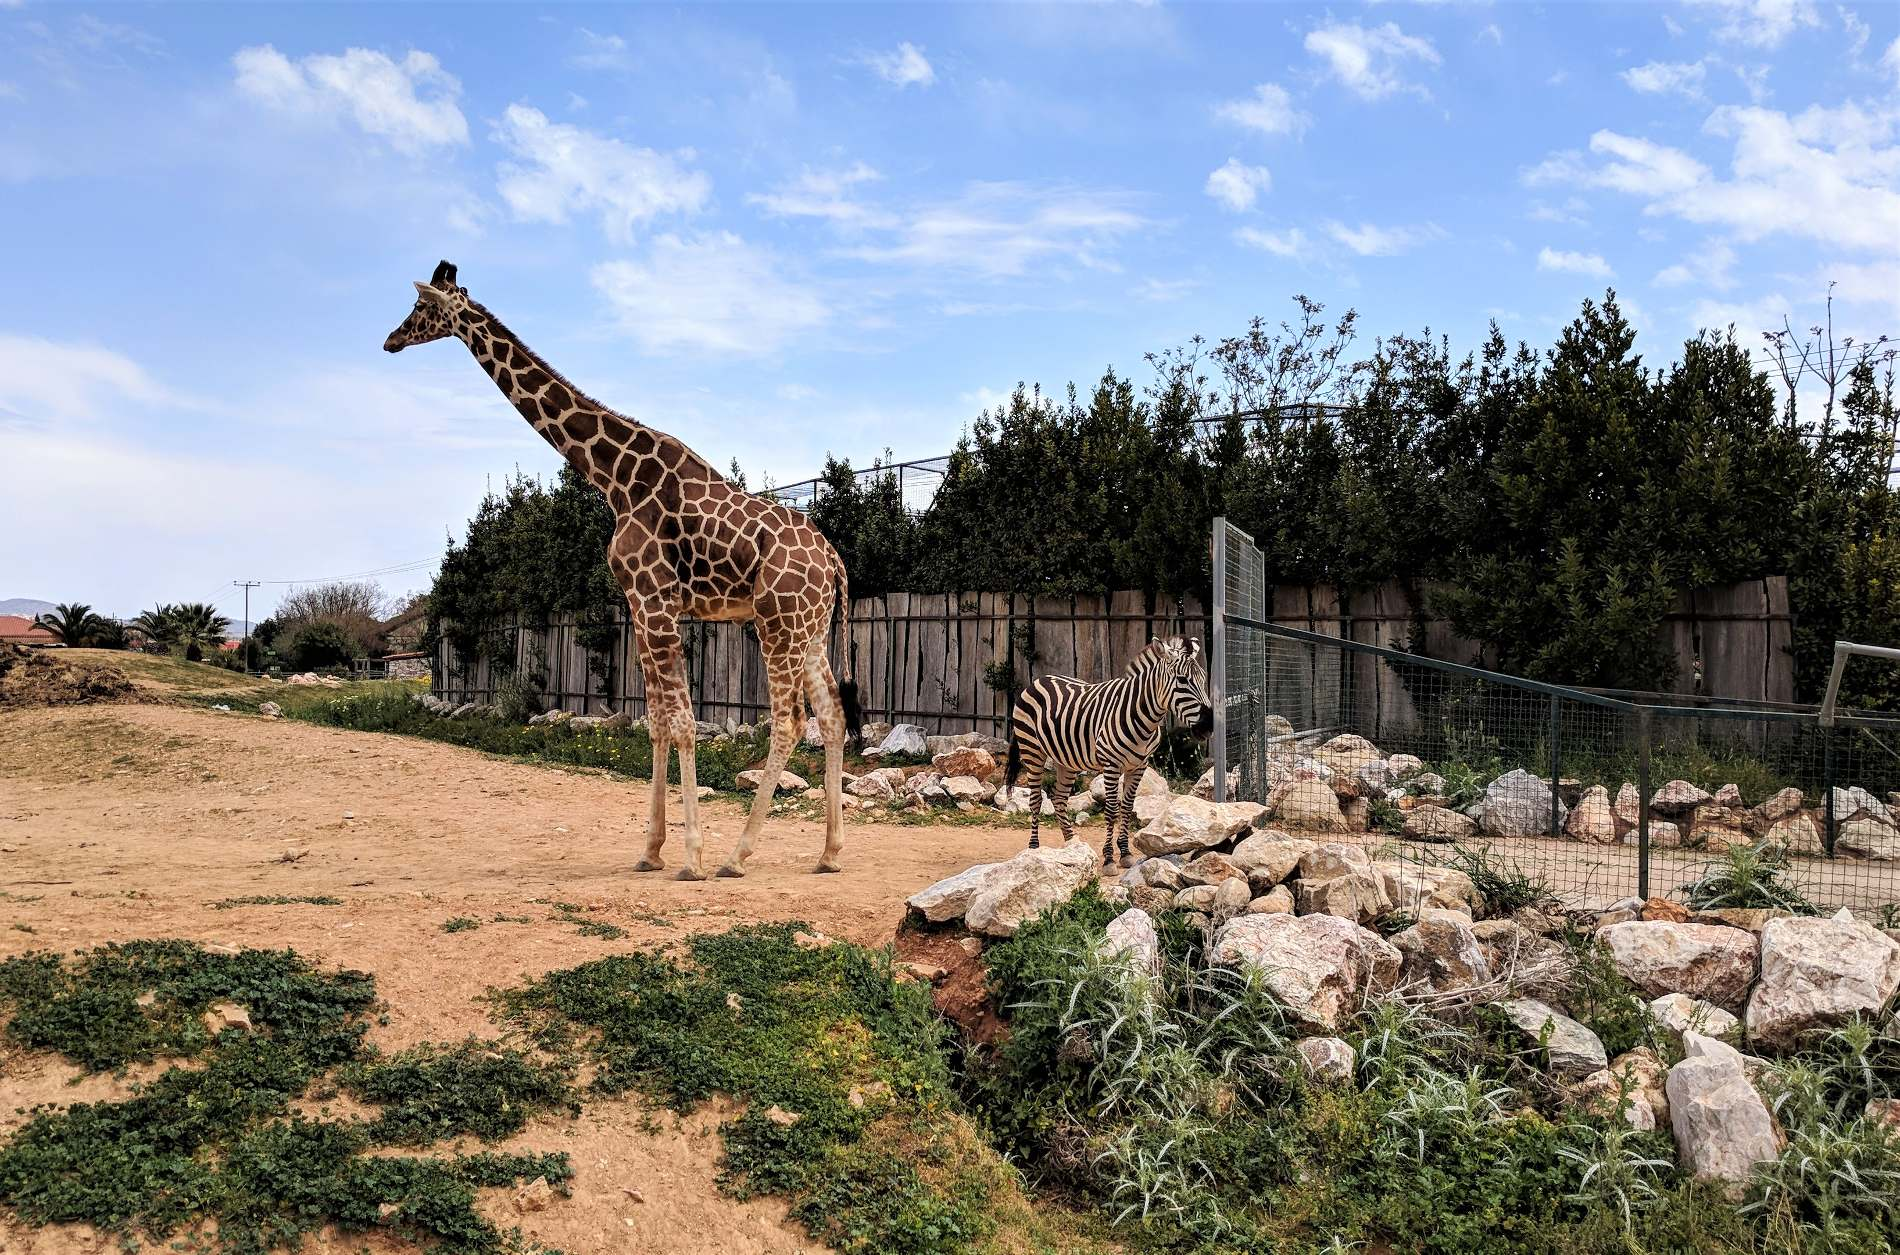 A giraffe and a zebra at the Attica Zoological Park, some kilometers outside Athens.